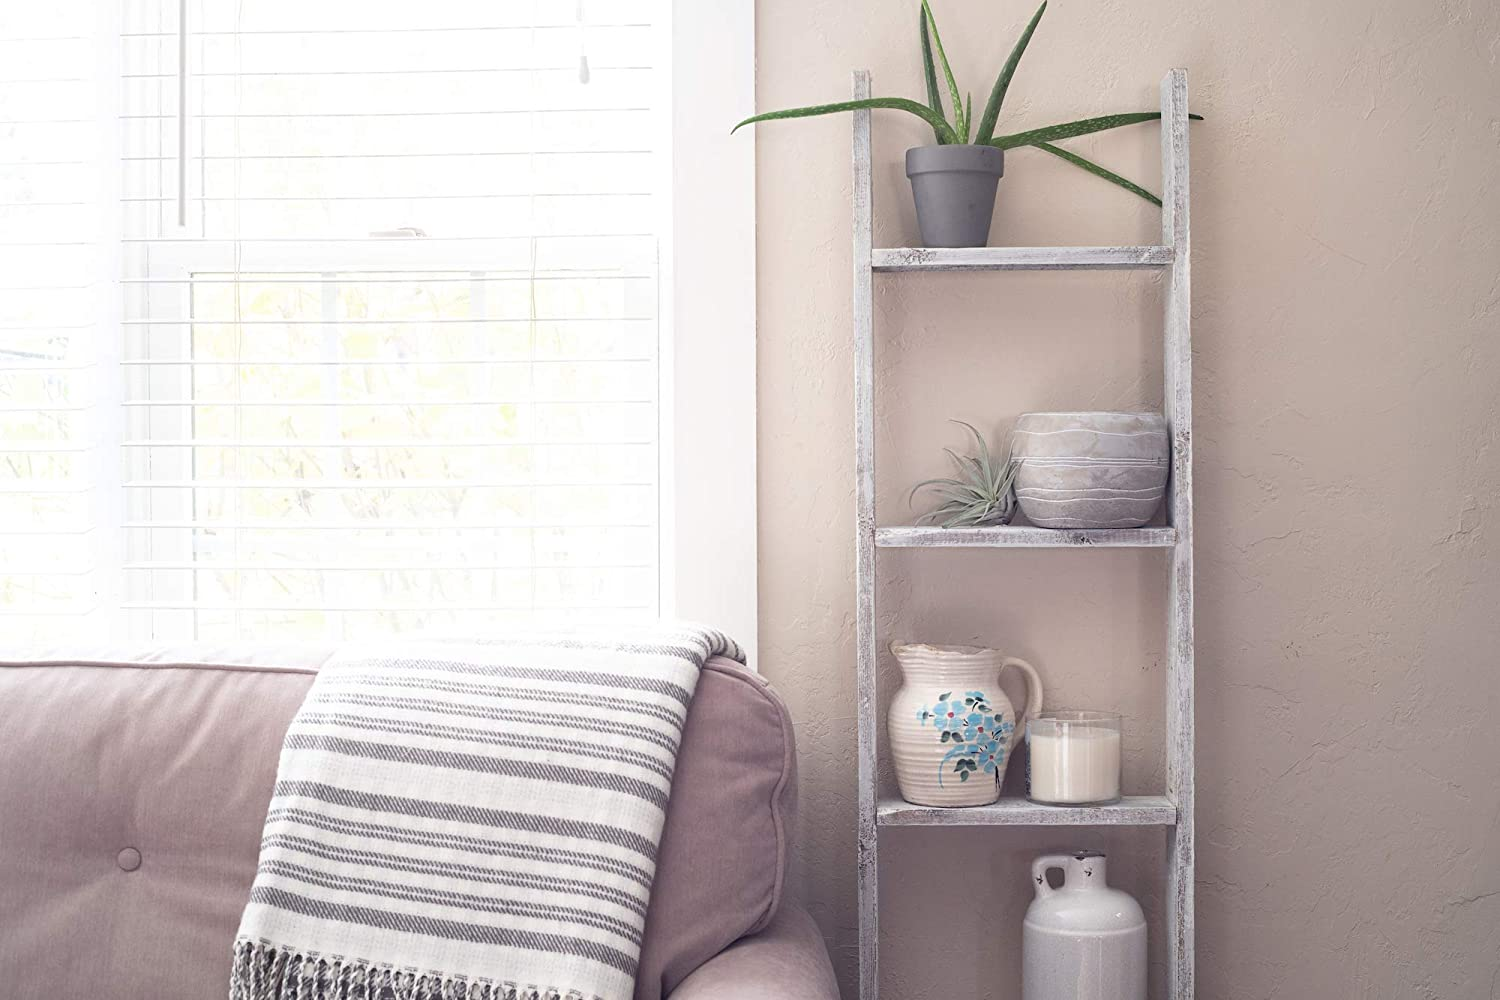 White No Assembly Required BarnwoodUSA Rustic Farmhouse Blanket Ladder Our 5 ft Ladder can be Mounted Horizontally or Vertically and is Crafted from 100/% Recycled and Reclaimed Wood